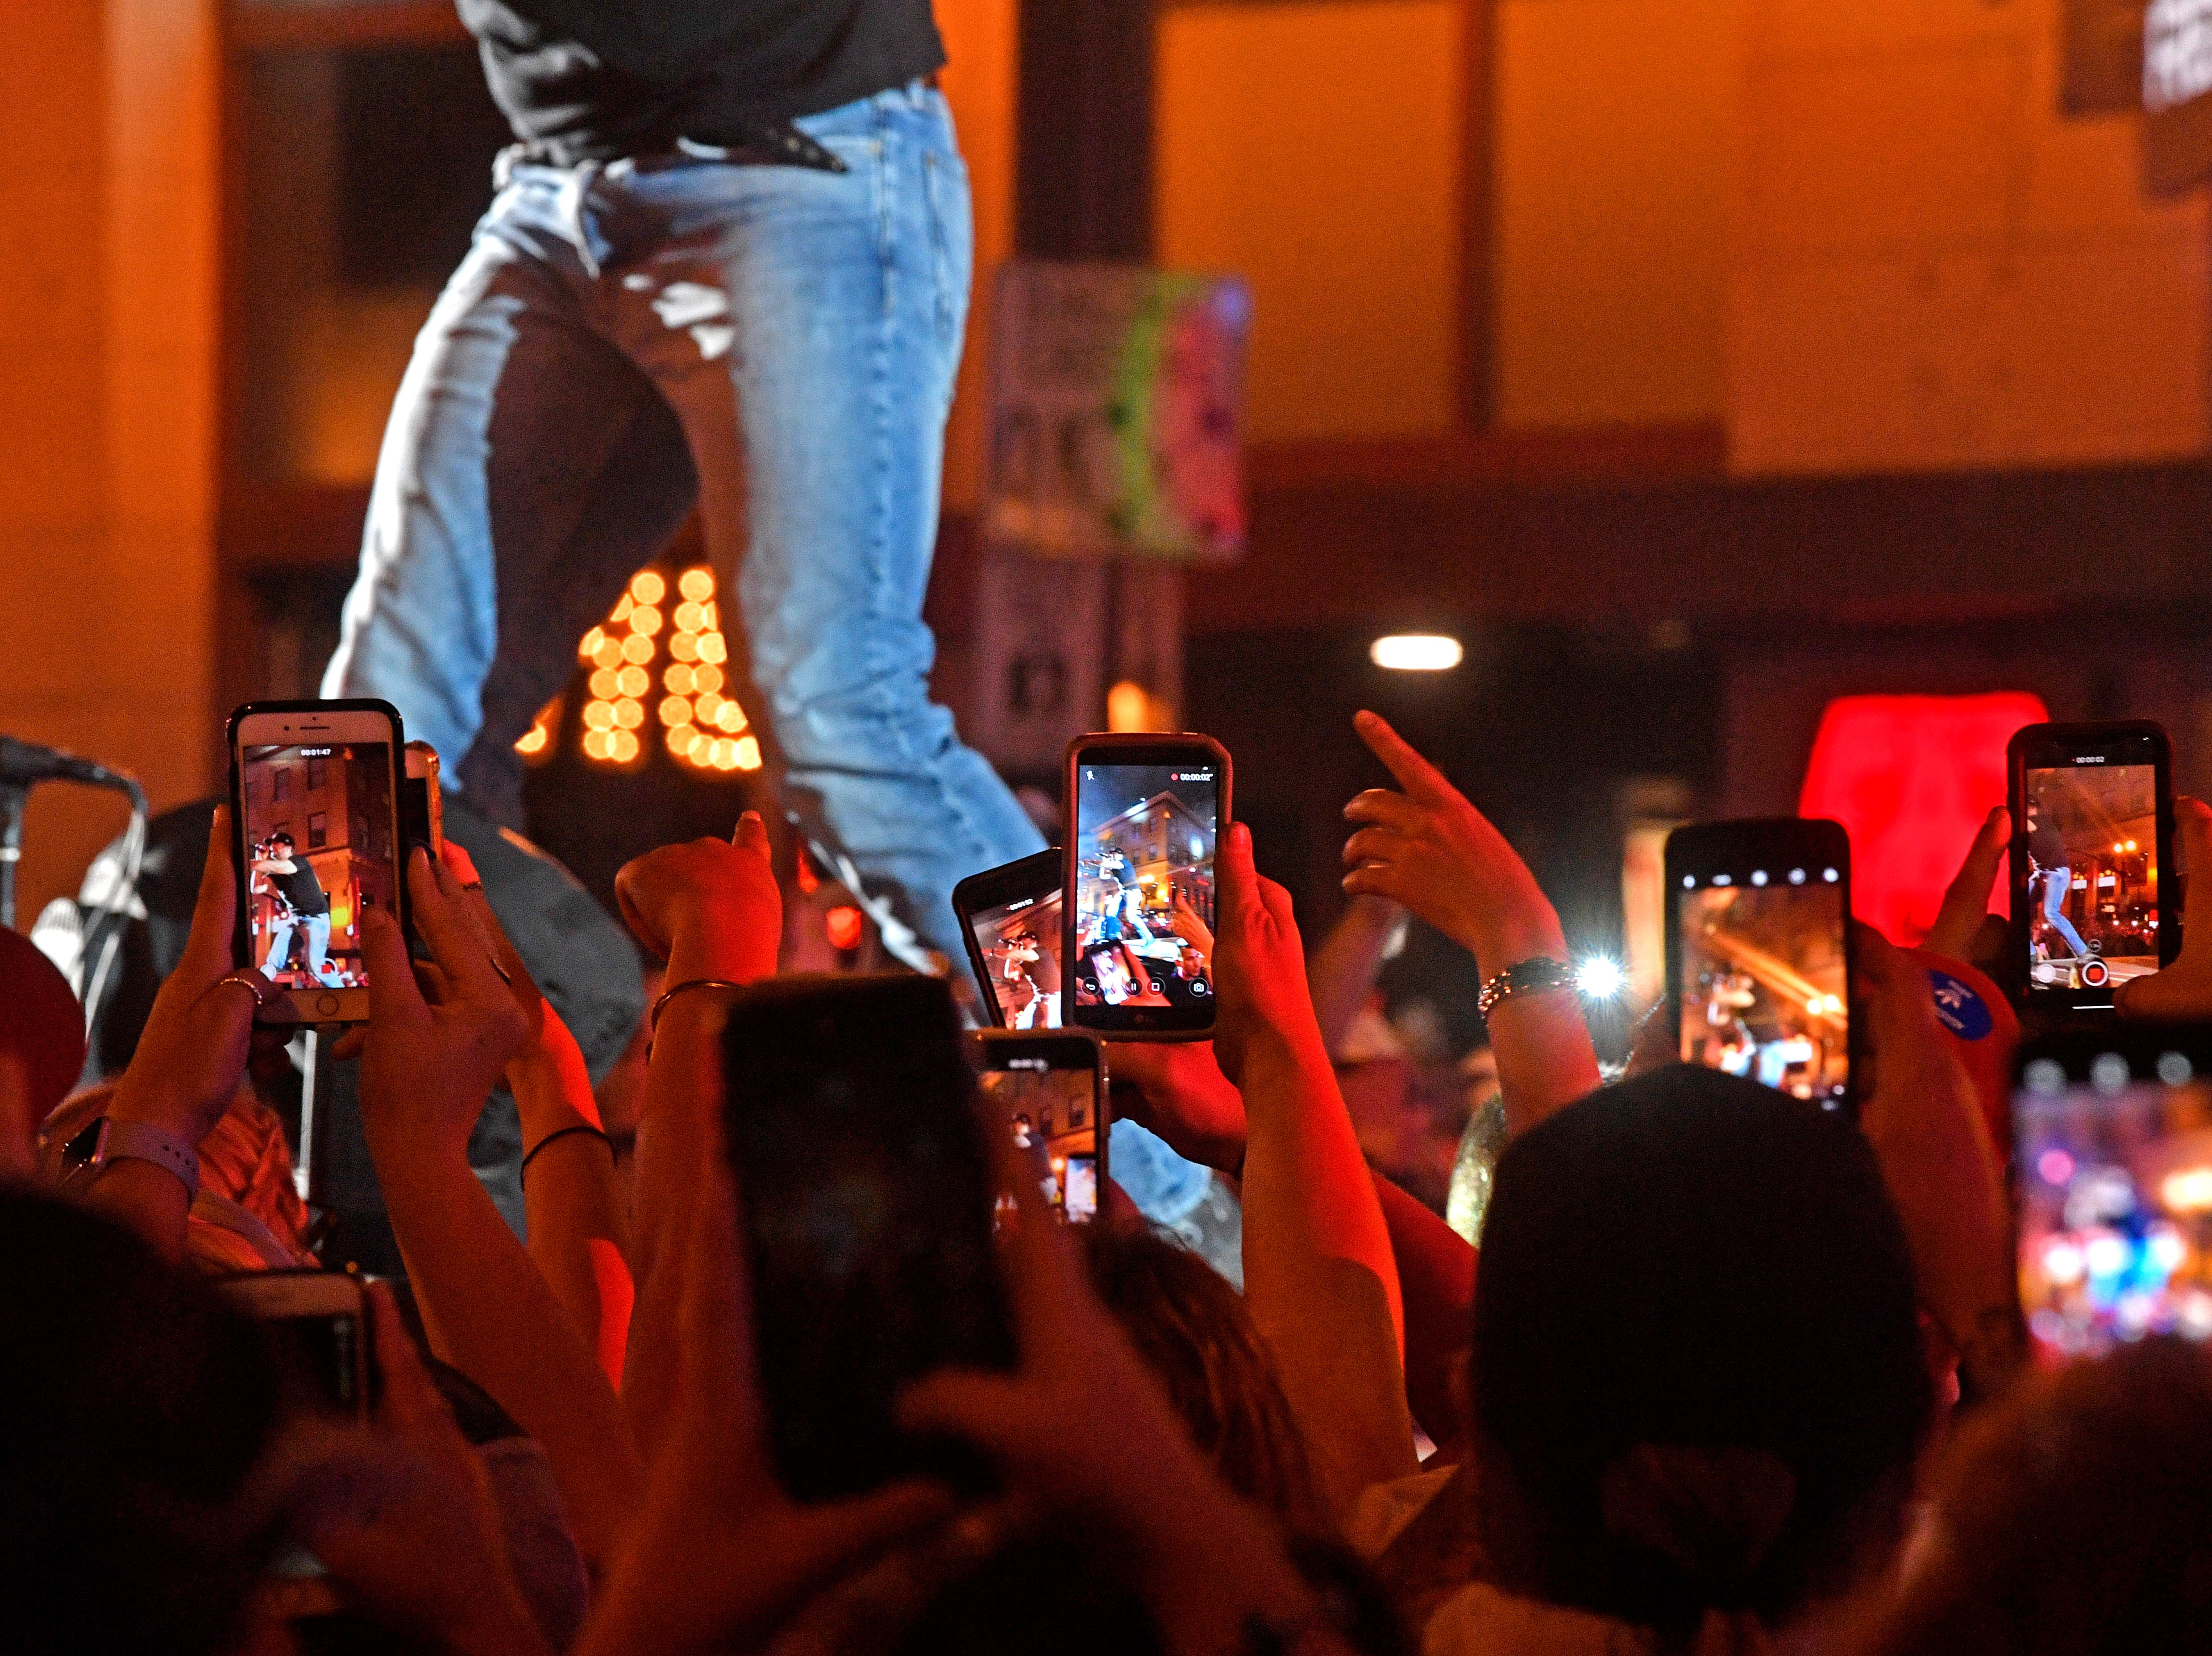 Fans get out their cell phones to get a close up photo as Luke Bryan performs a concert for fans in front of his new bar Luke's 32 Bridge at 3rd and Broadway Monday Sept. 10, 2018, in Nashville, Tenn.